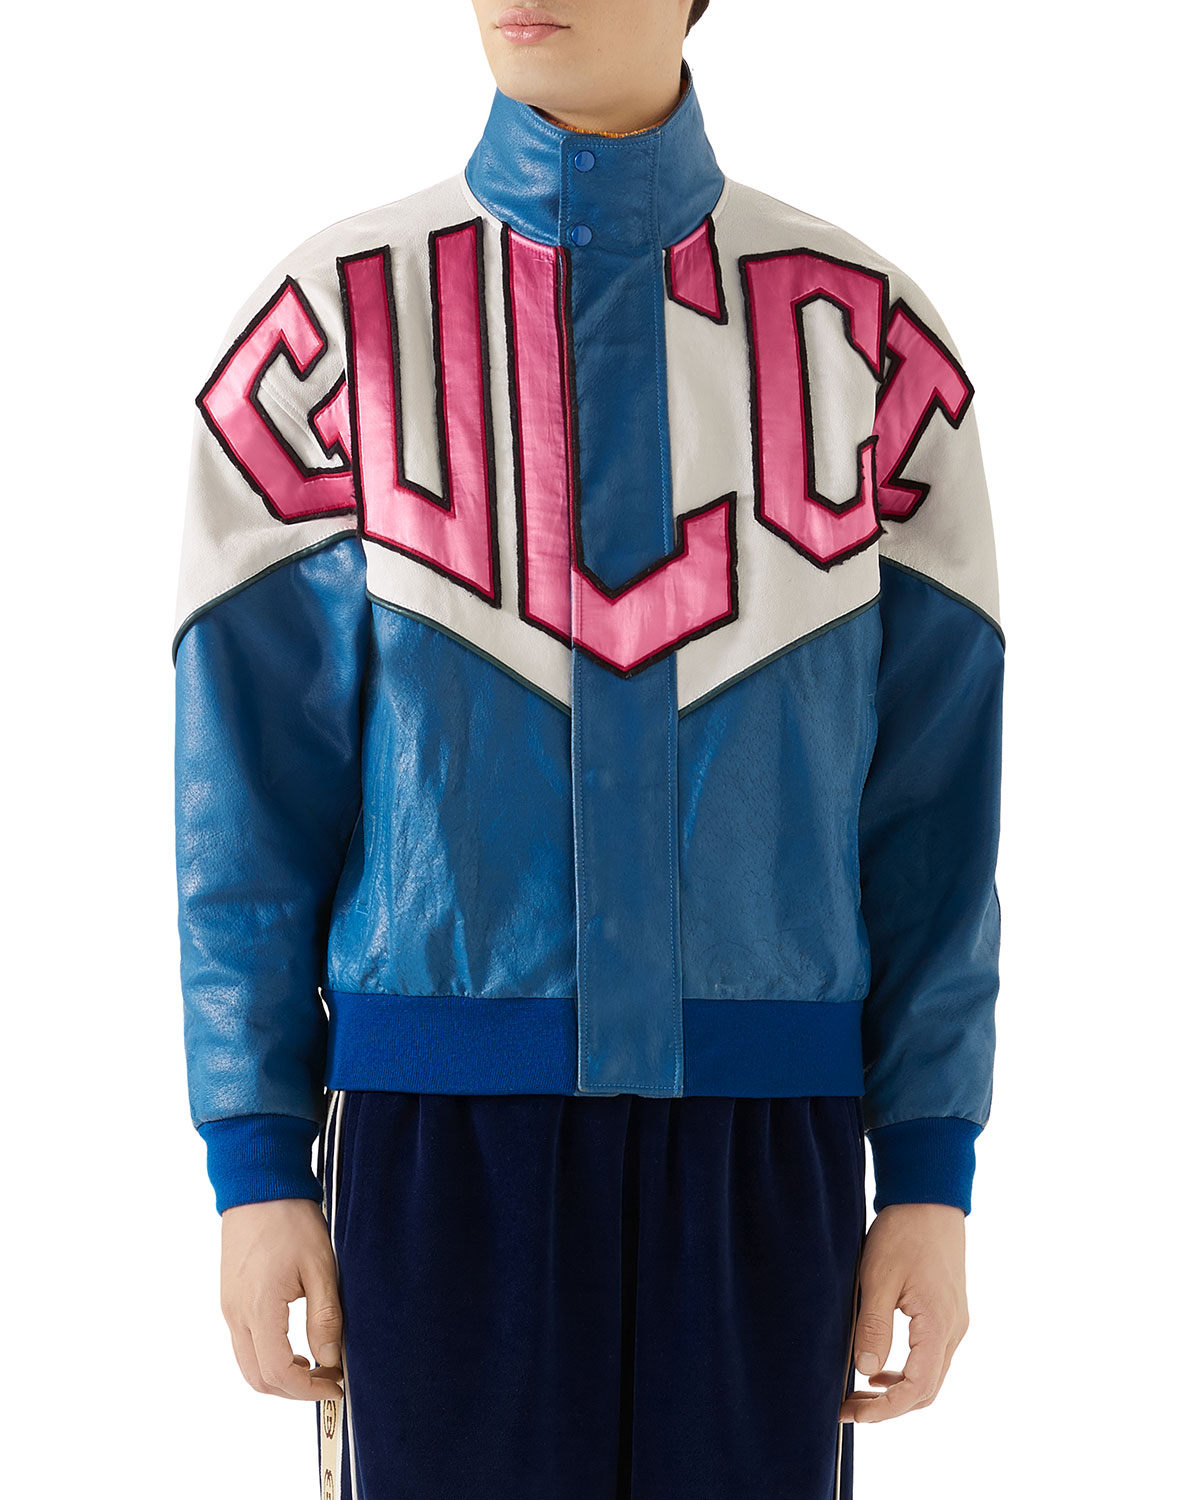 Gucci Jackets Men's Retro Logo Colorblock Leather Bomber Jacket